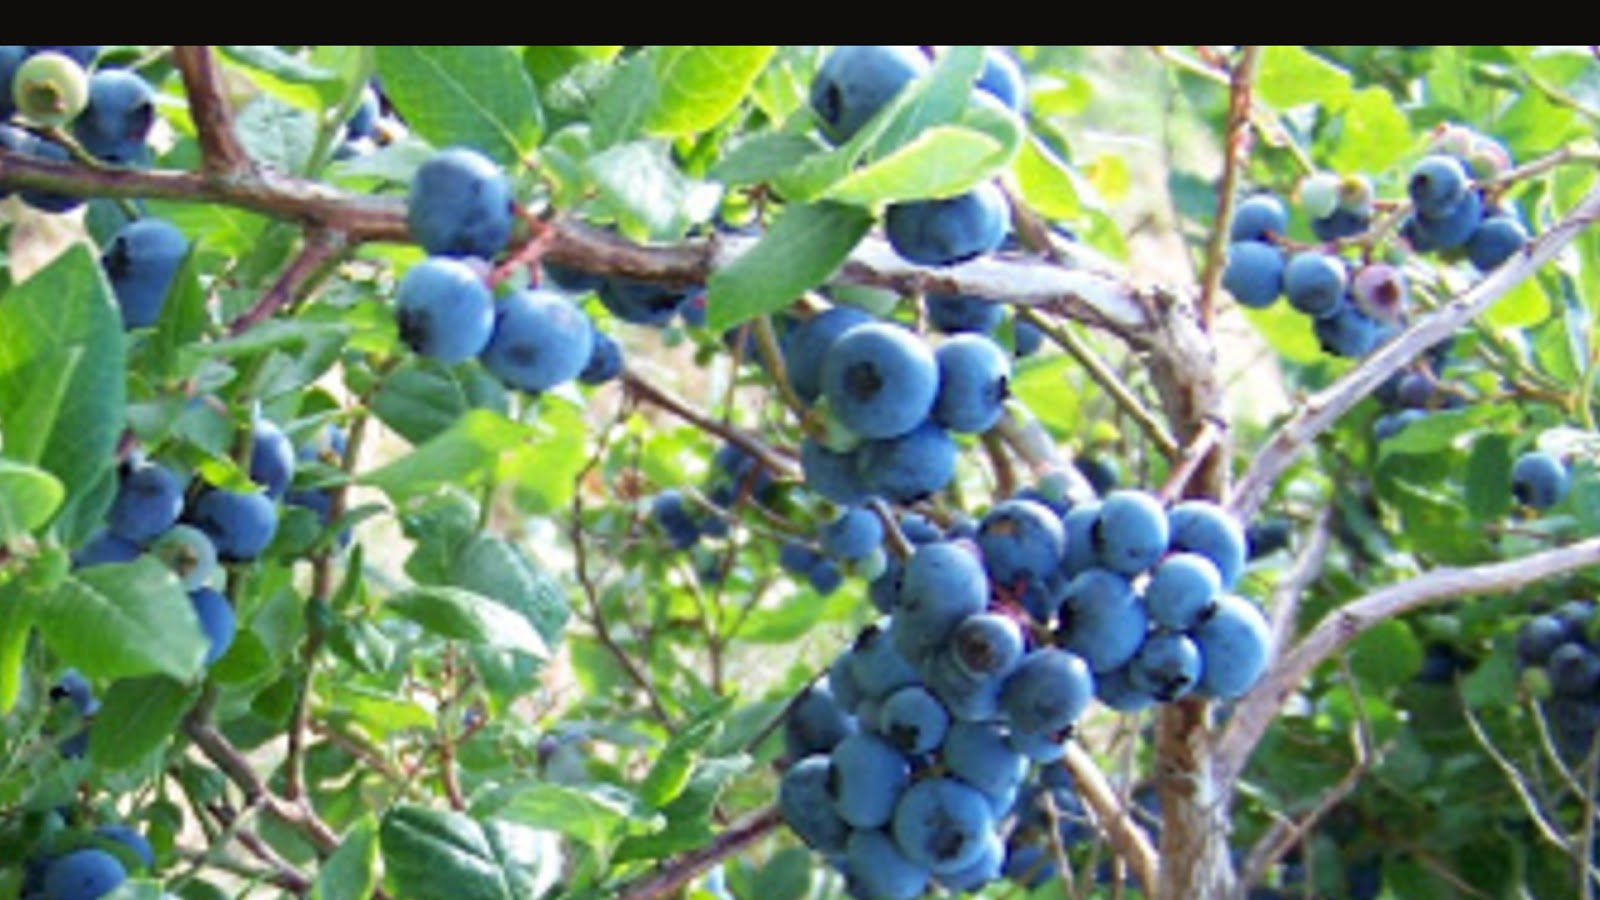 types of blueberries